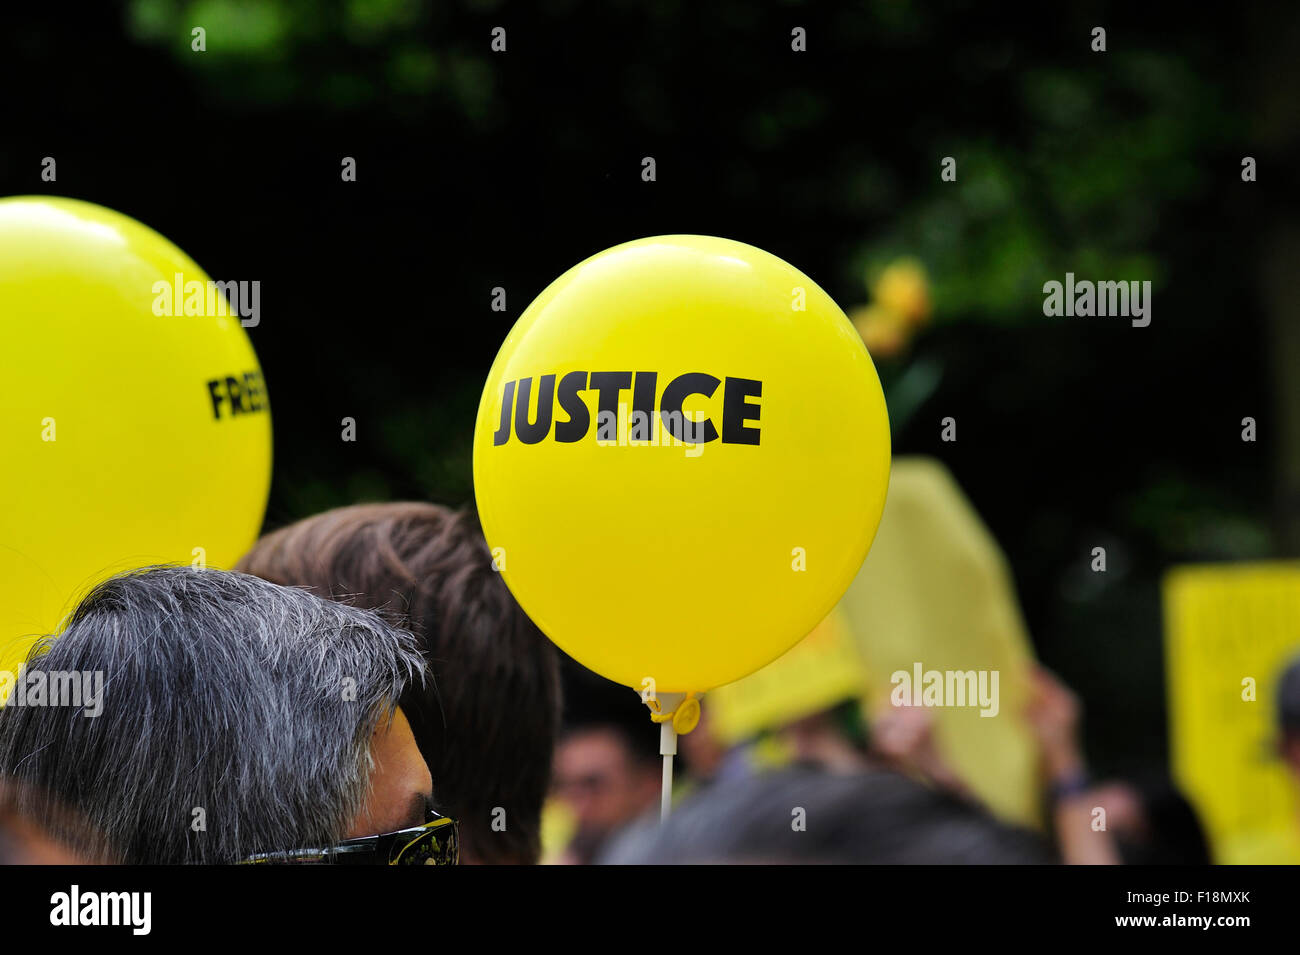 London, UK. 29th Aug, 2015. Malaysians held a rally in London, in line with similar rallies across the globe, to Stock Photo